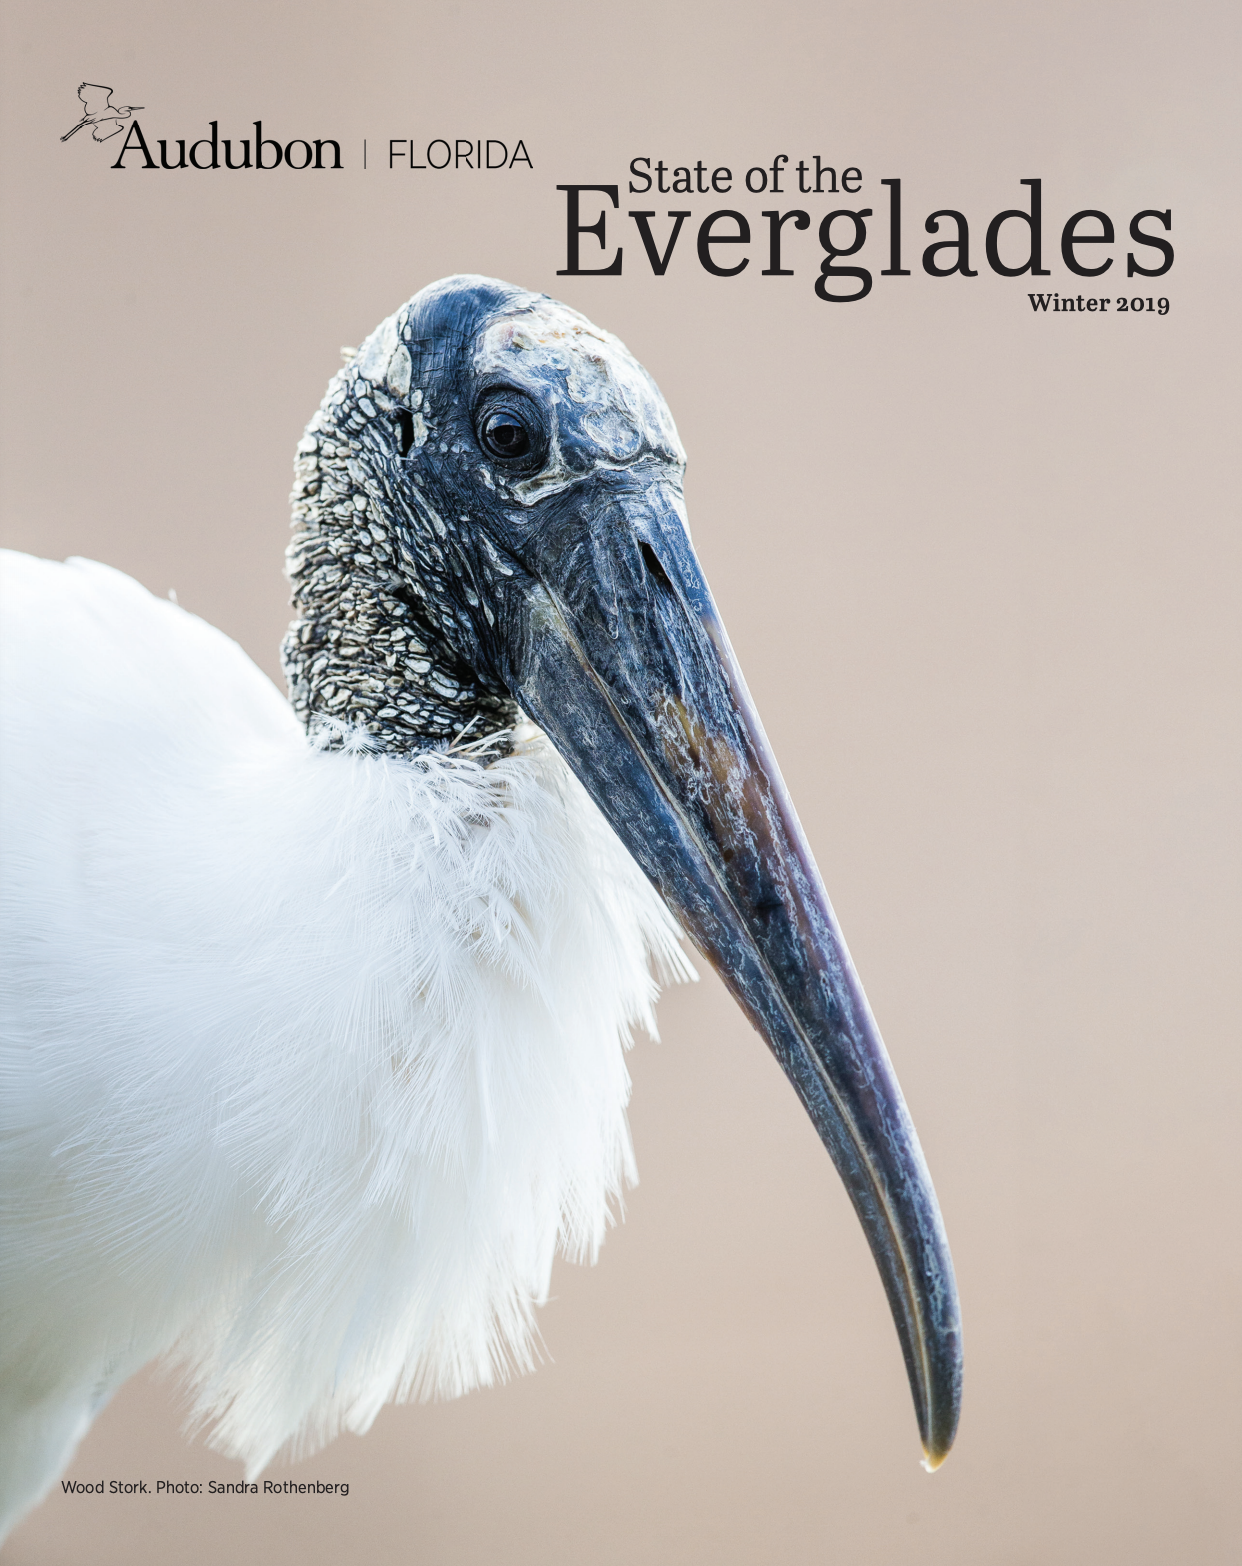 Cover of the State of the Everglades Report, Winter 2019.